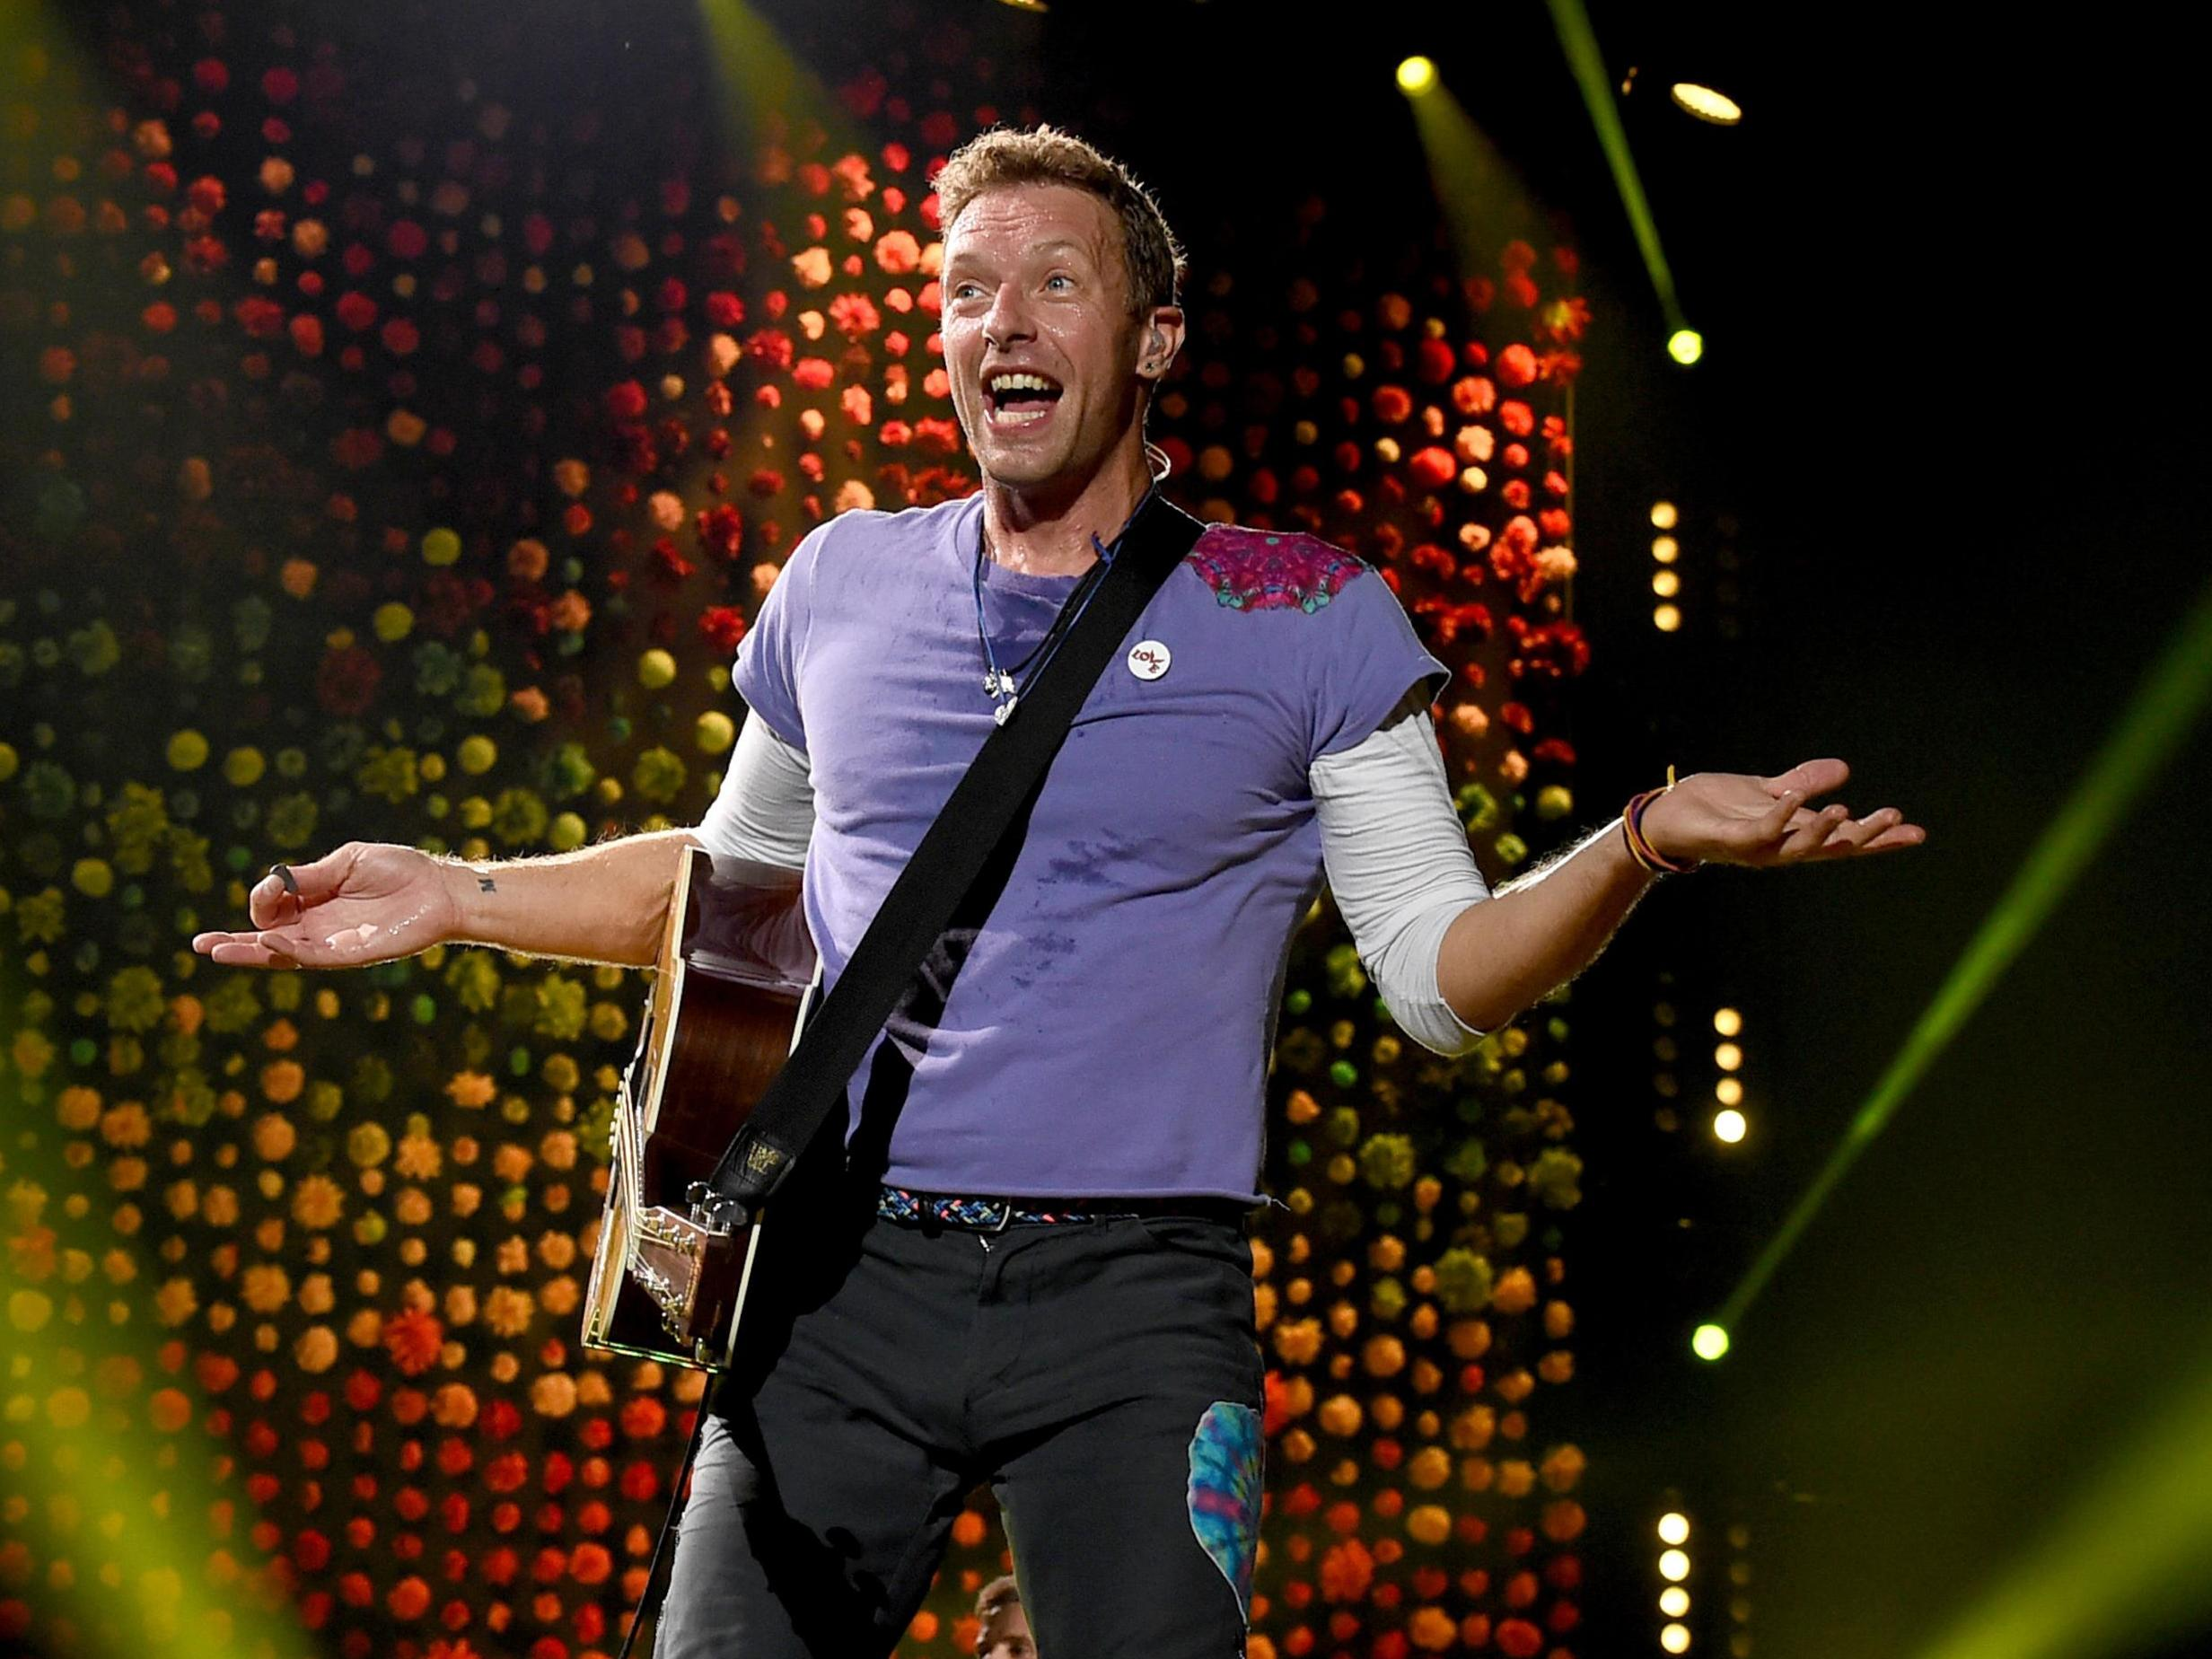 Coldplay - latest news, breaking stories and comment - The Independent